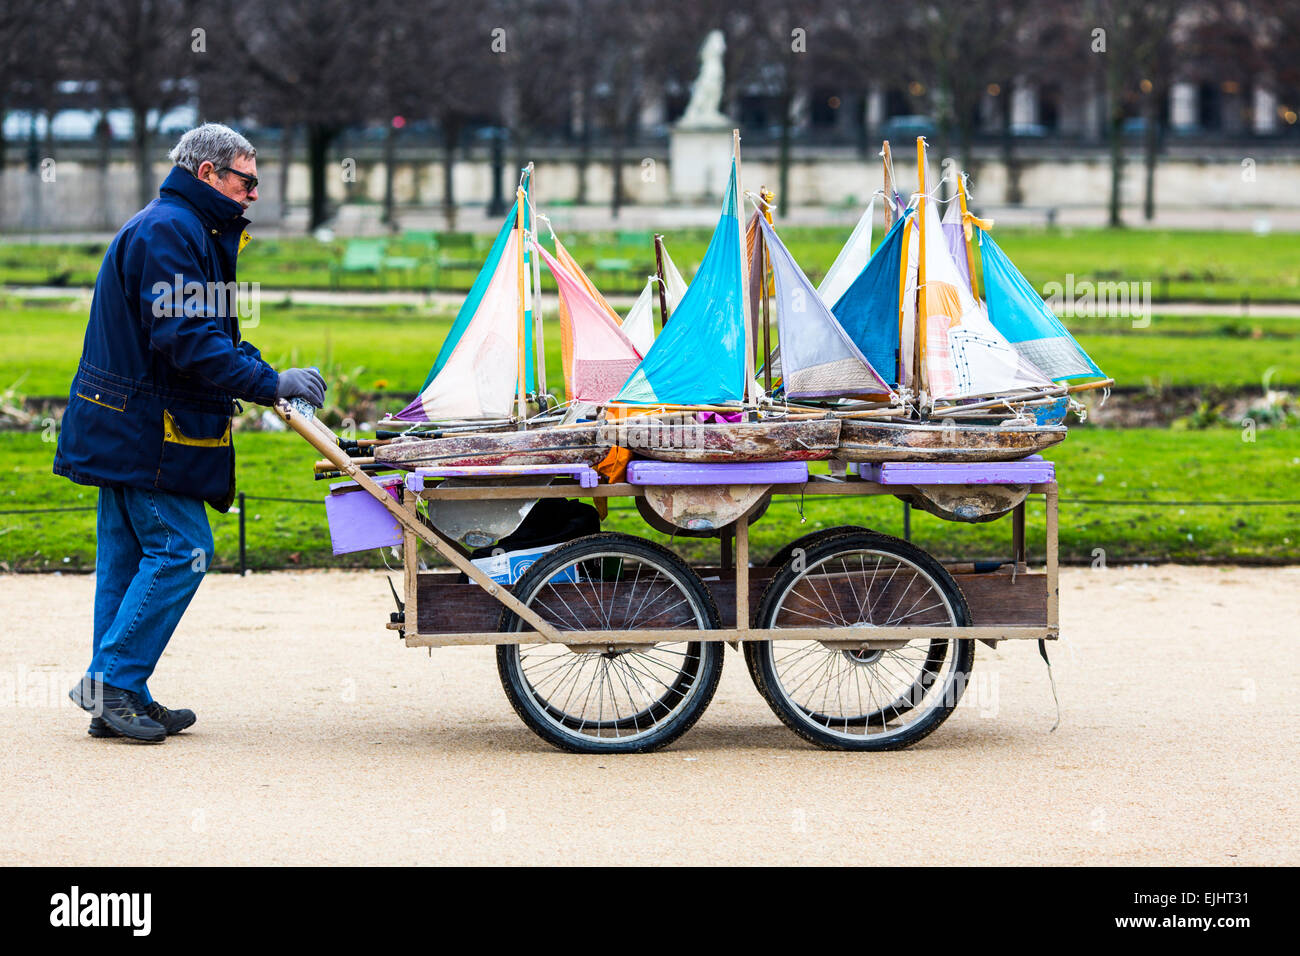 Man with cart carrying toy sailing boats in the Tuileries Gardens, Paris, France Stock Photo